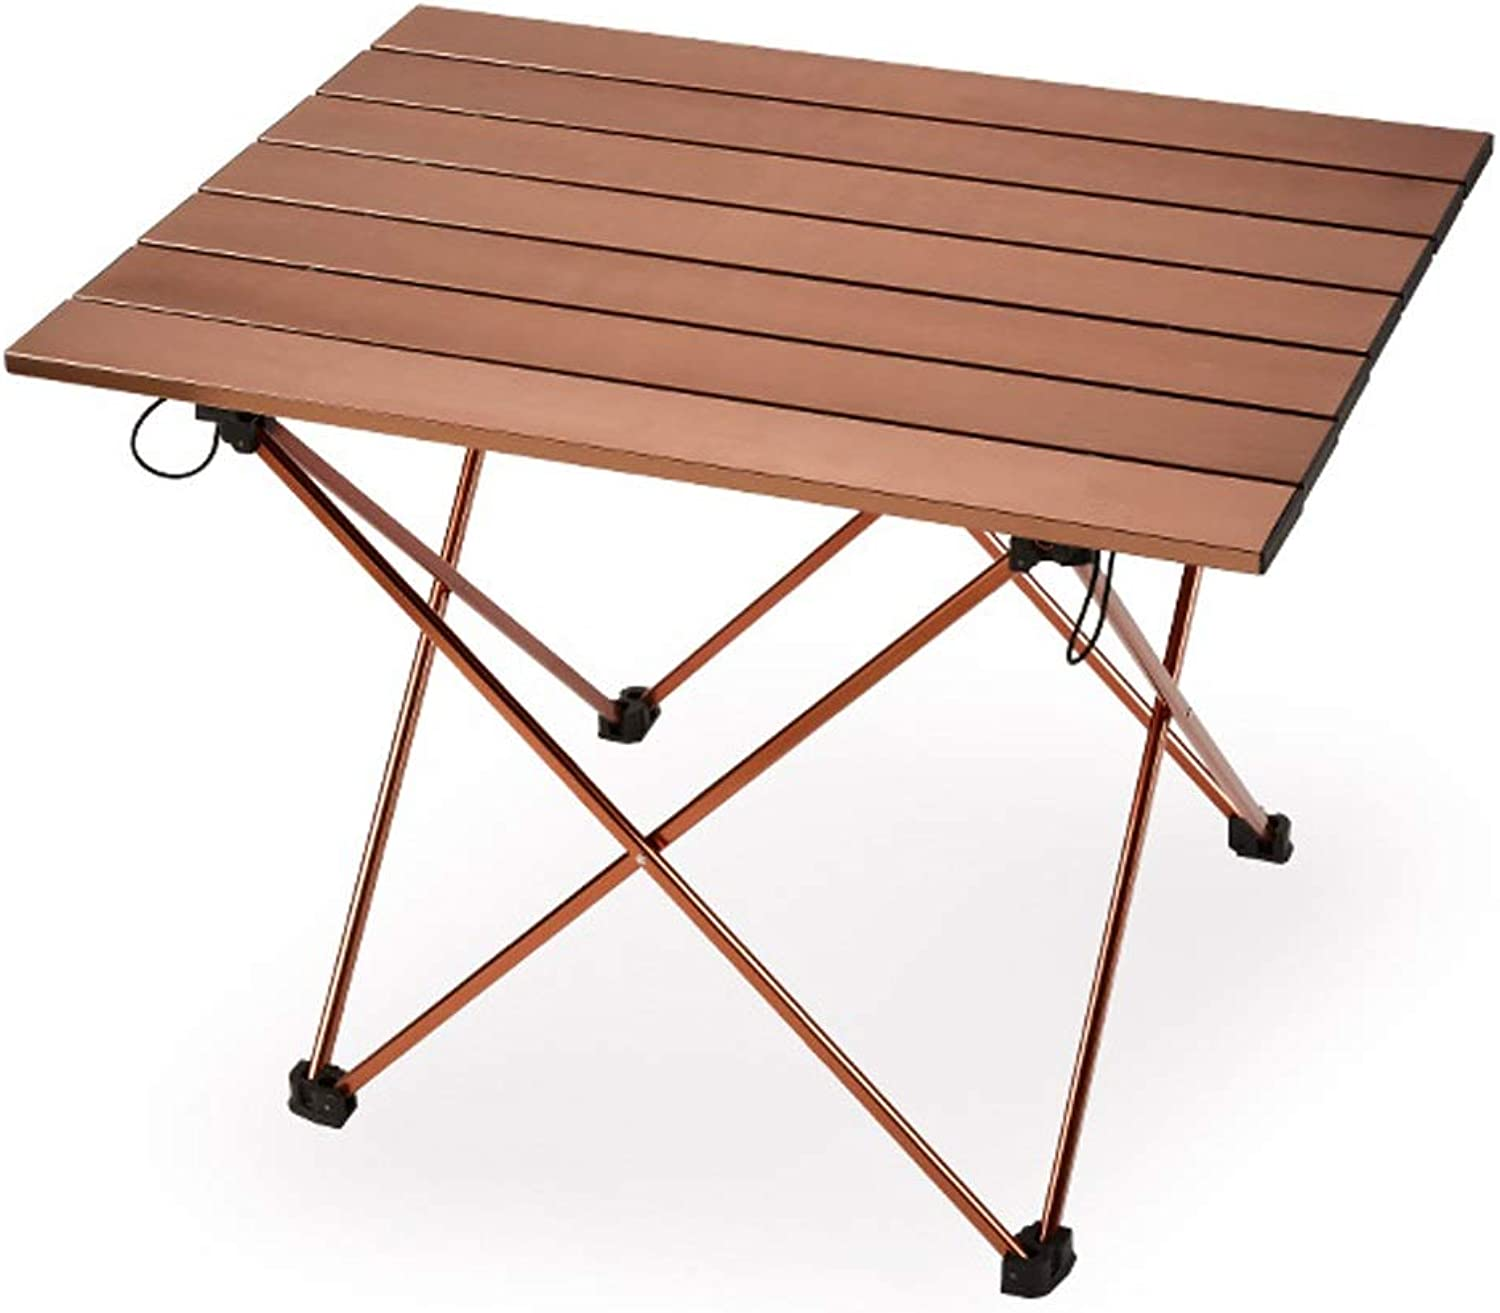 AA Outdoor Folding Picnic Table, Super Light Portable Aviation Aluminum Alloy Casual Camping Table Home (color   Champagne)